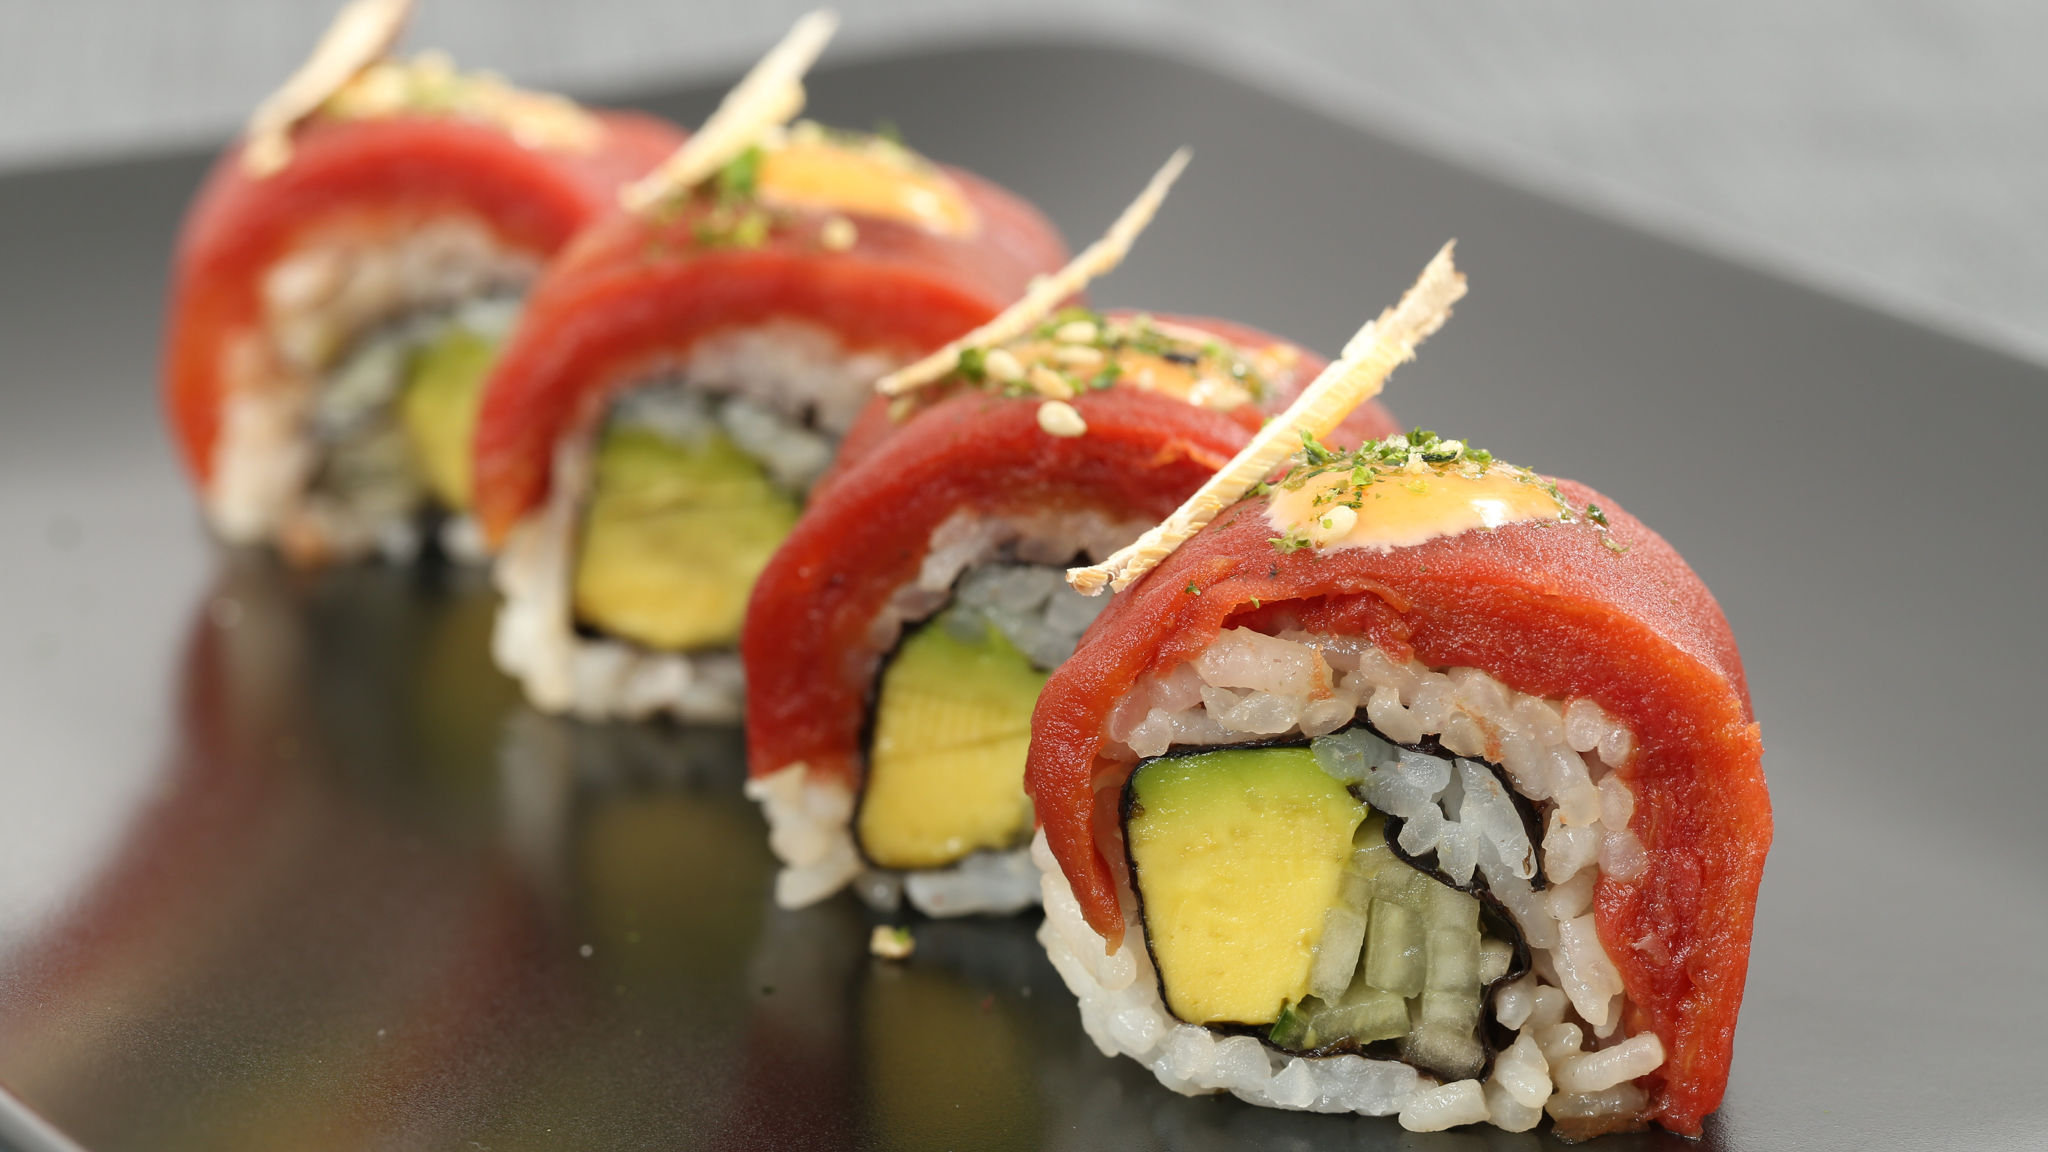 Plant-based fish is the new plant-based meat